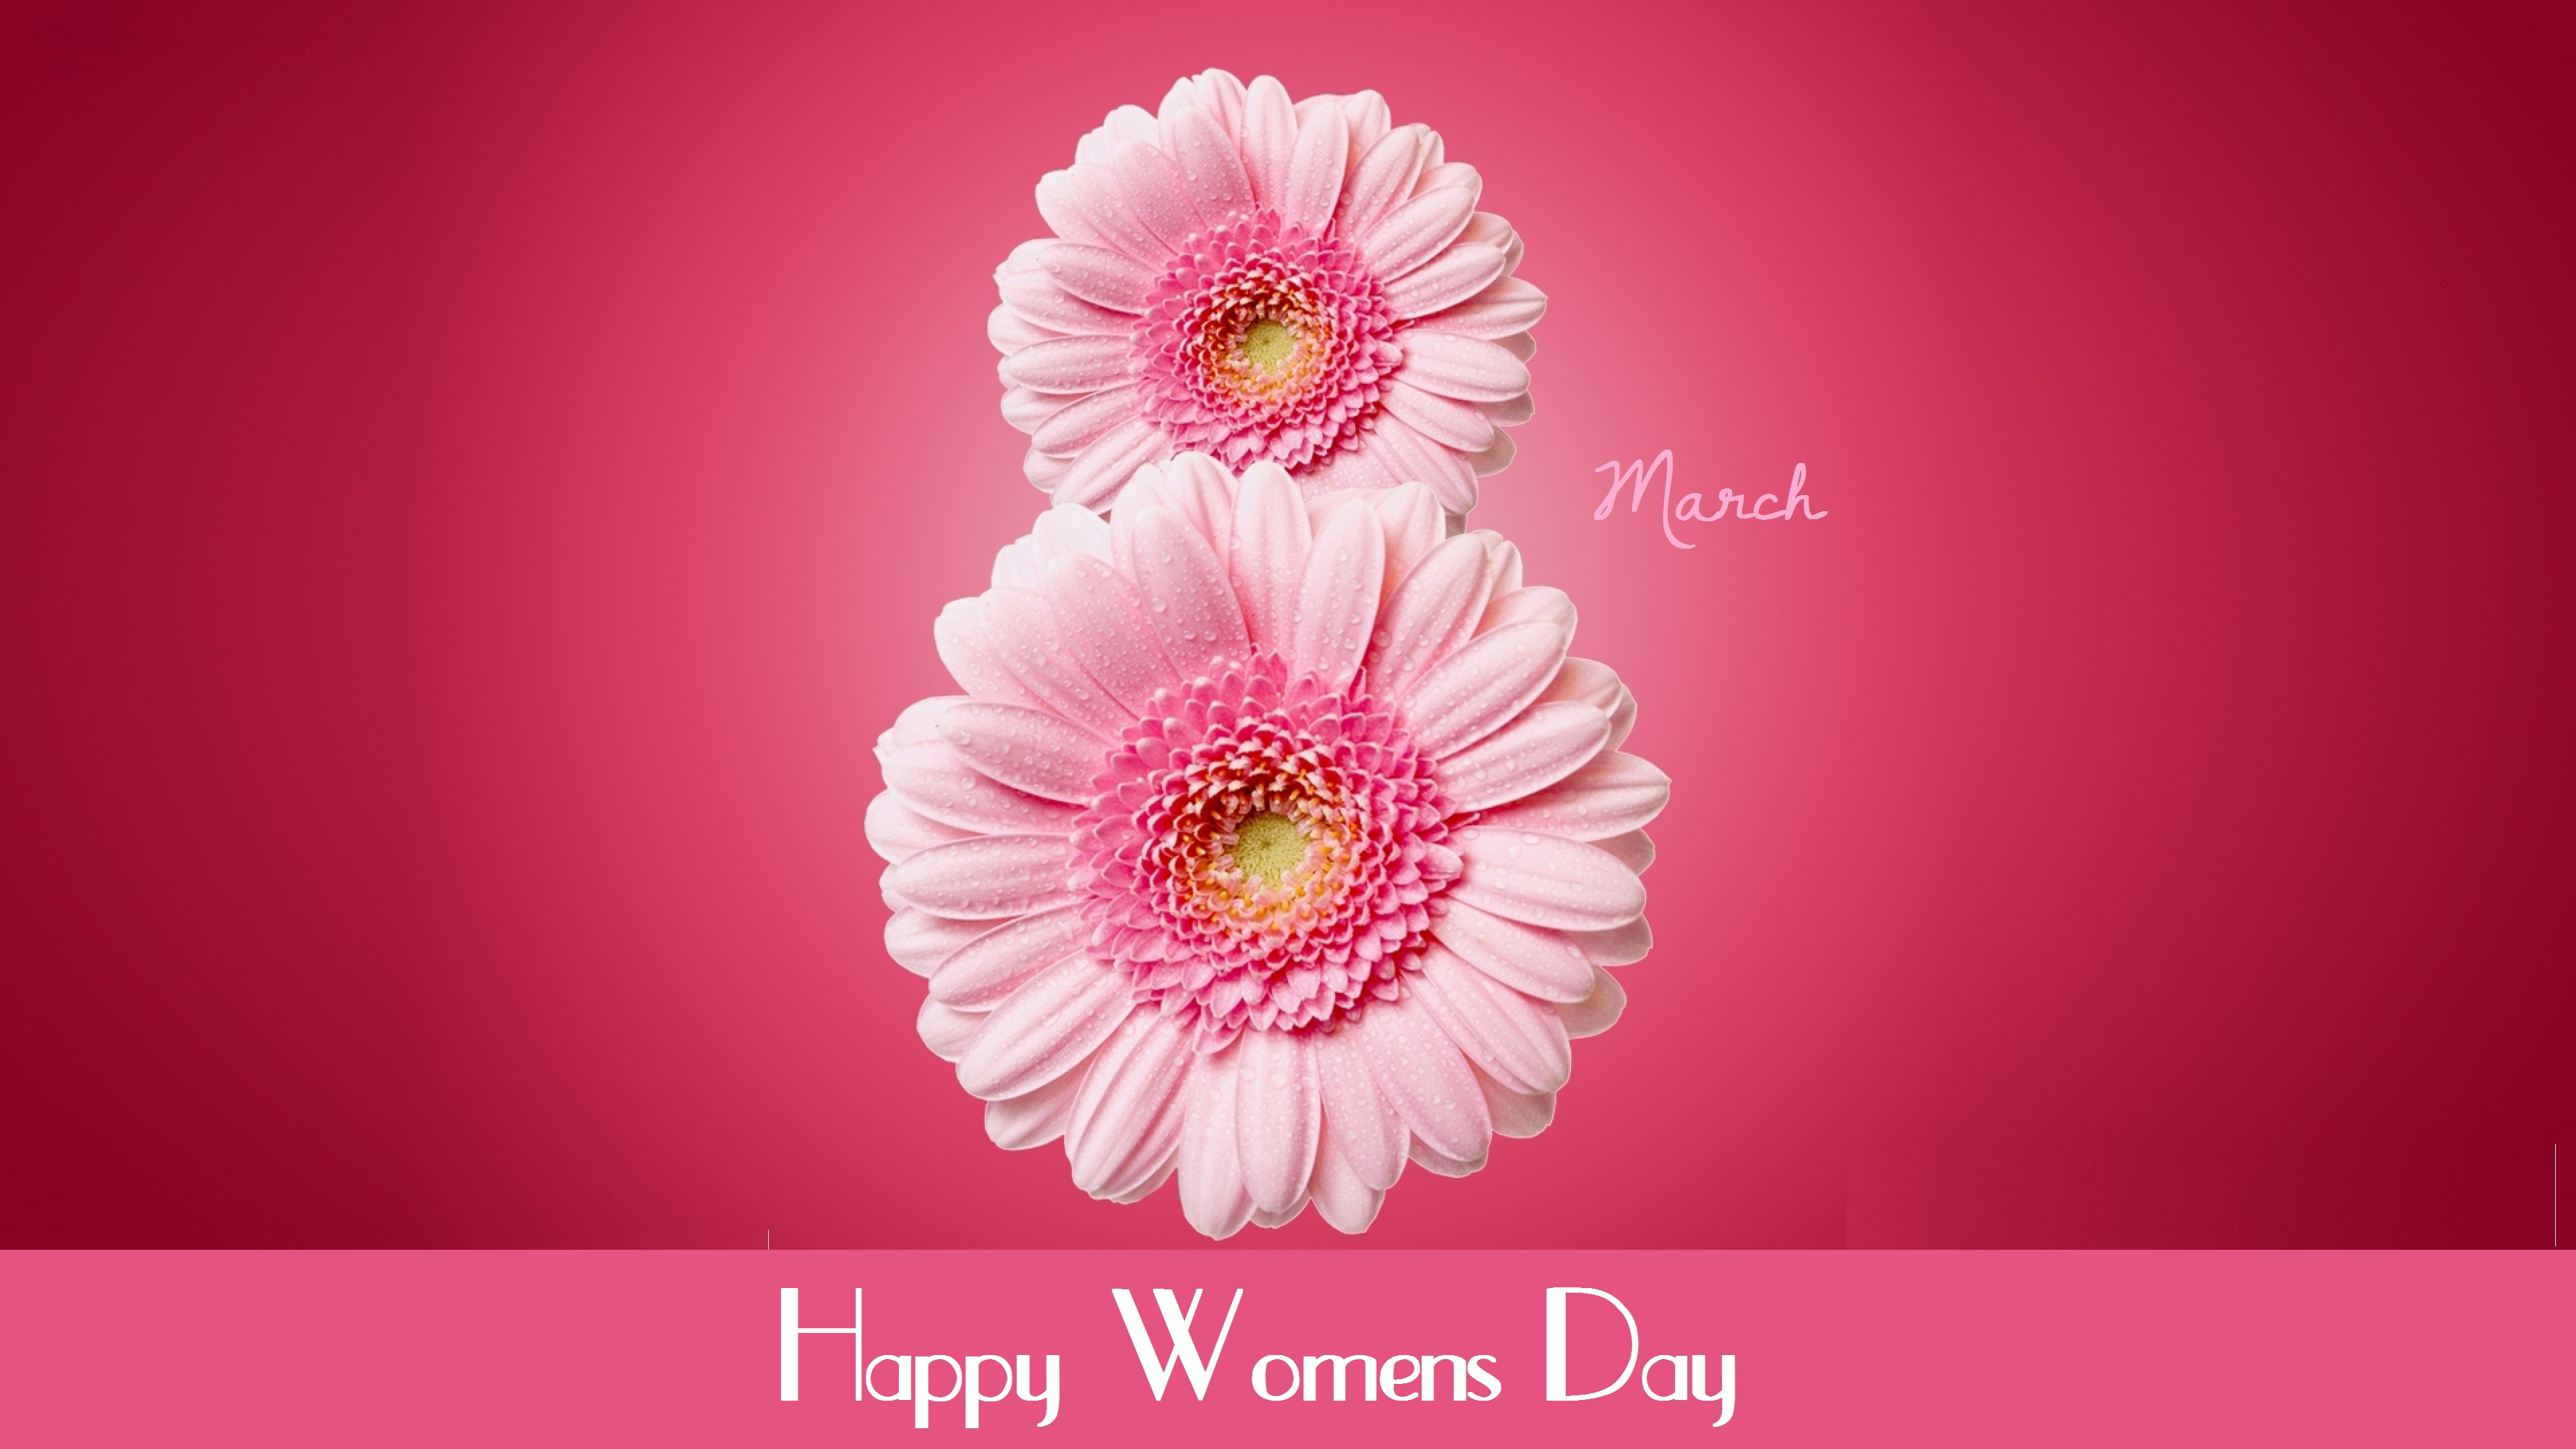 Happy International Women's Day (Inspiring Picture Quotes Inside)